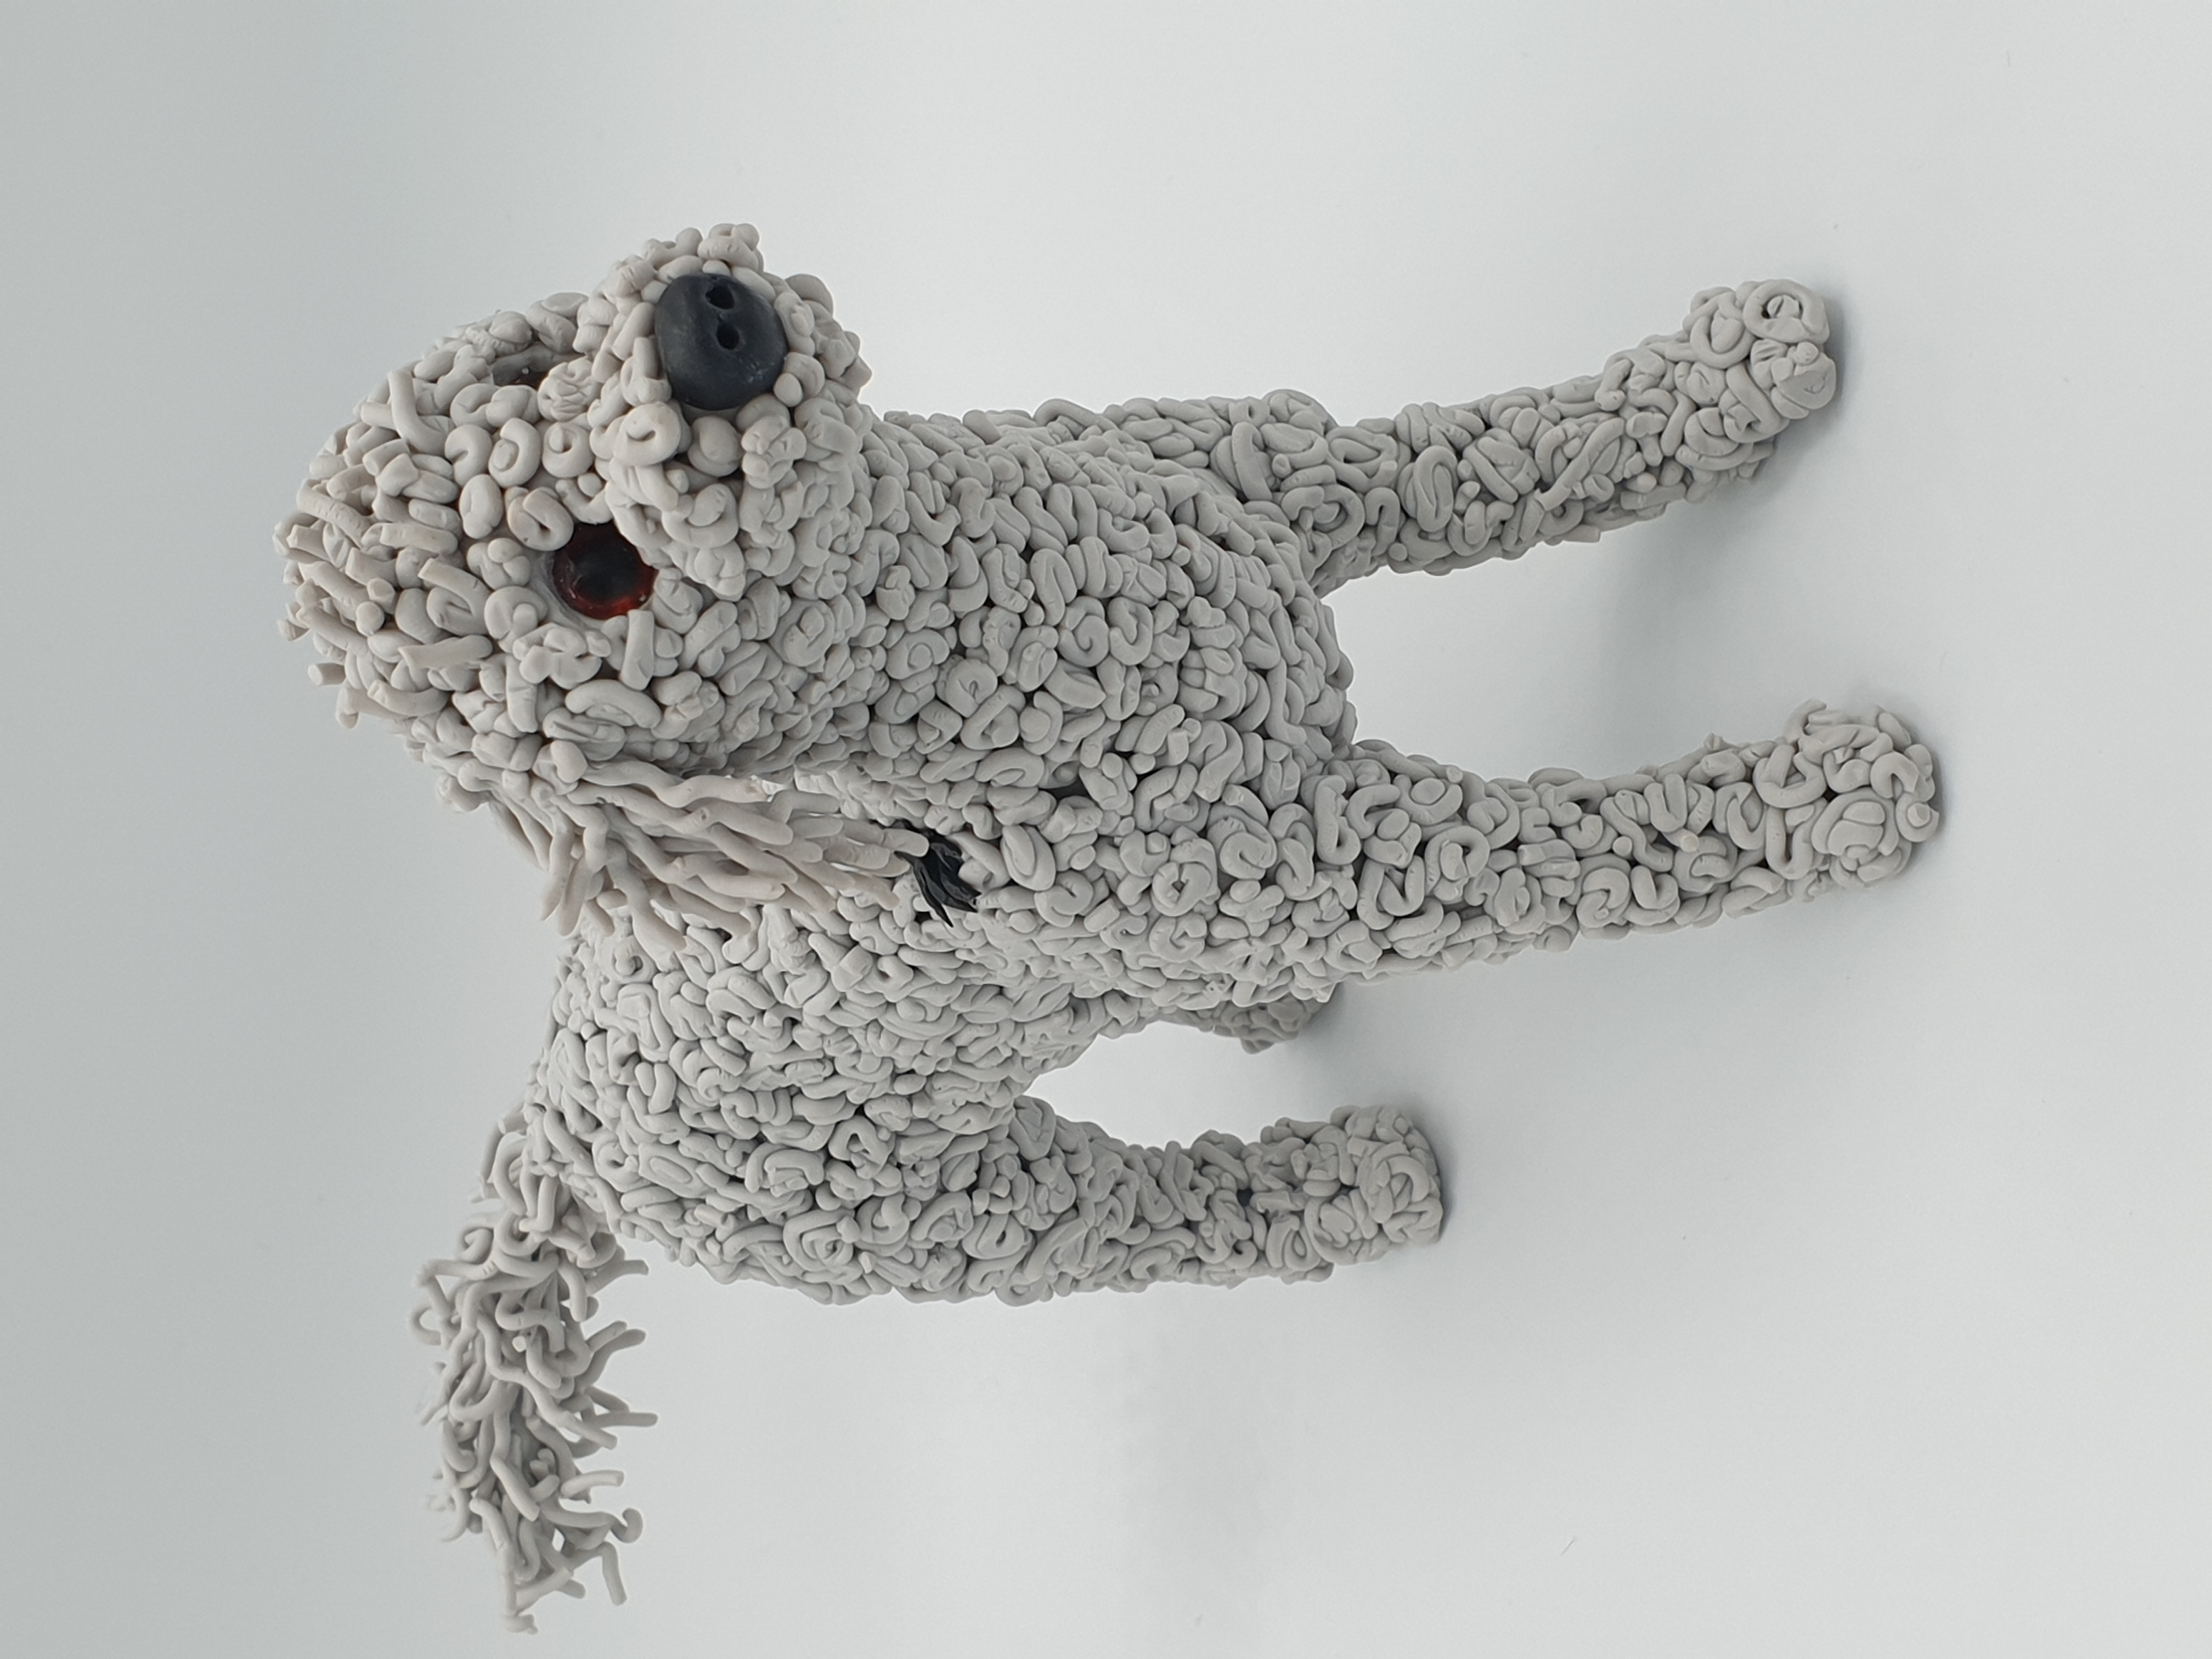 Stanley the Bedlington terrier